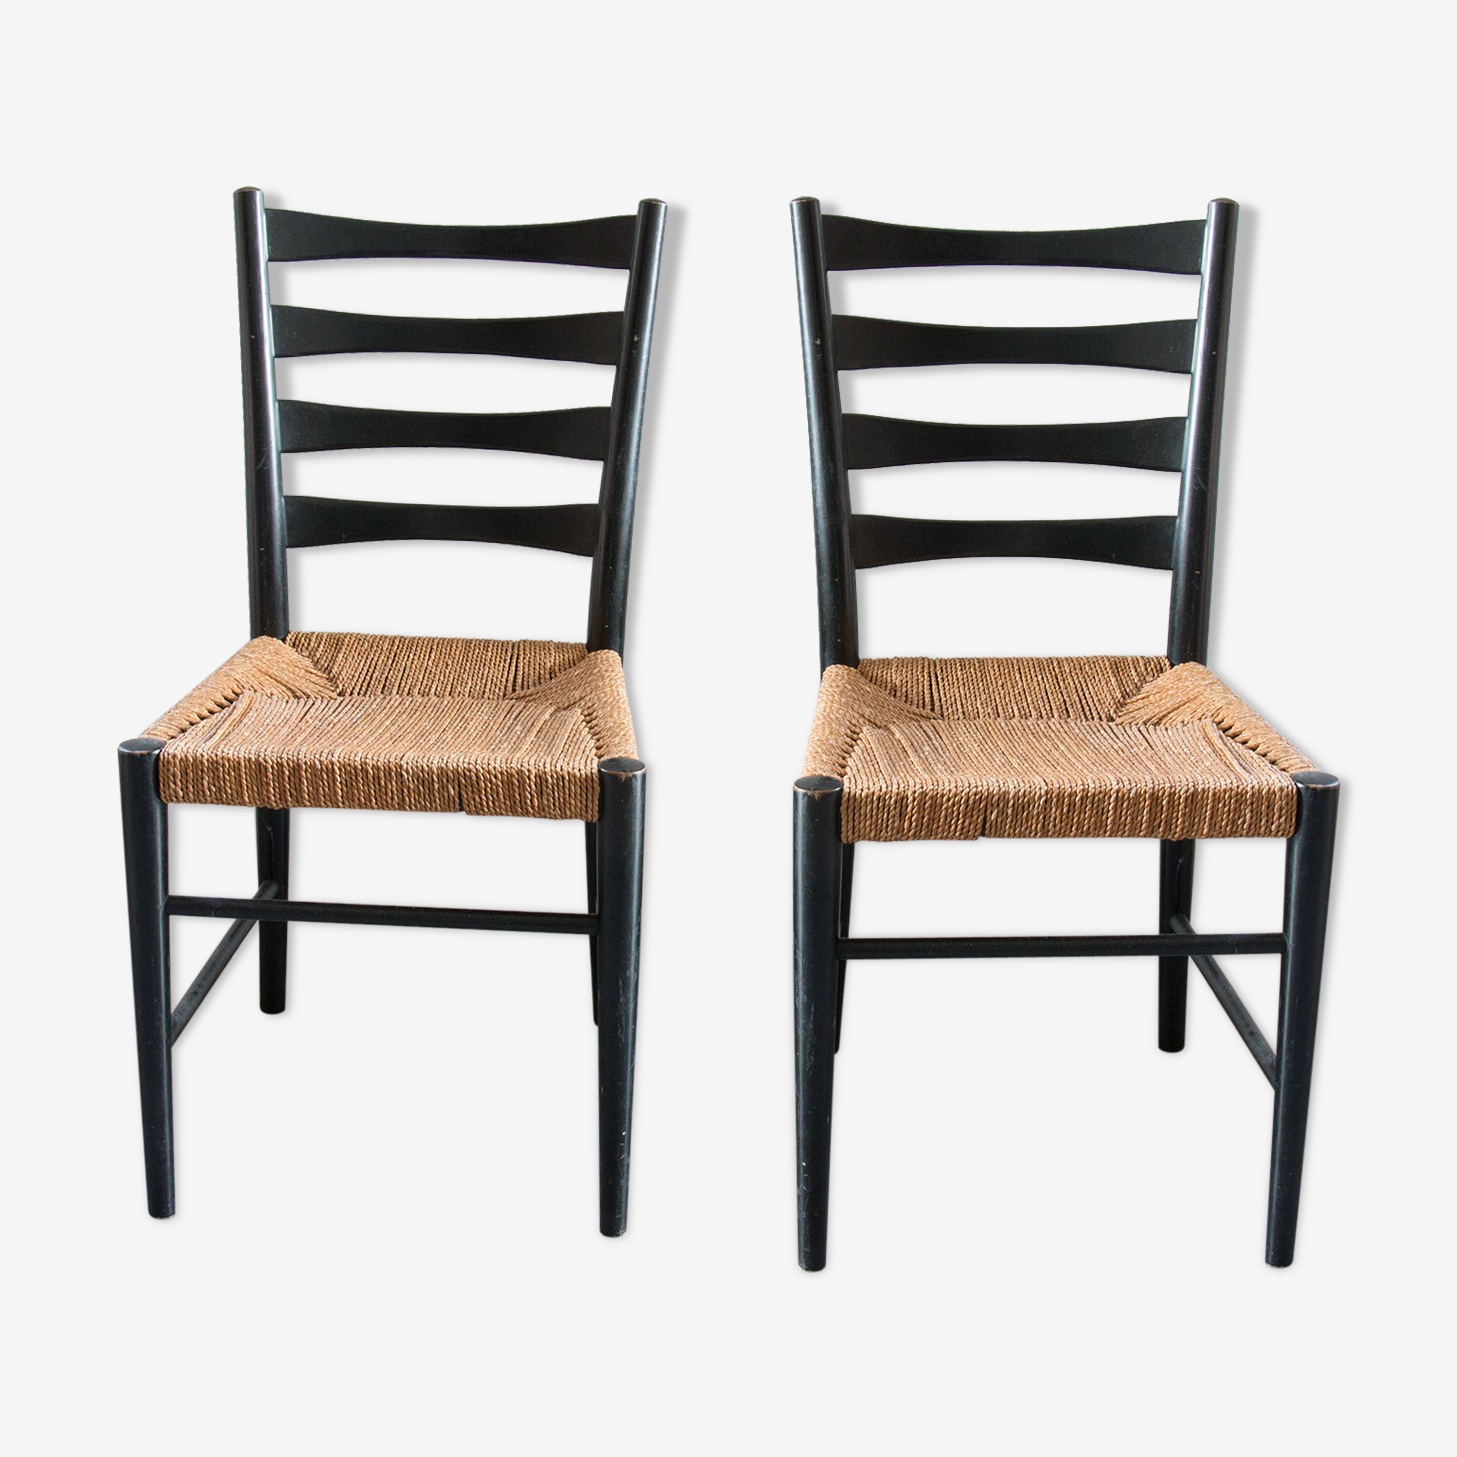 Black wooden chairs and strings, 60 years